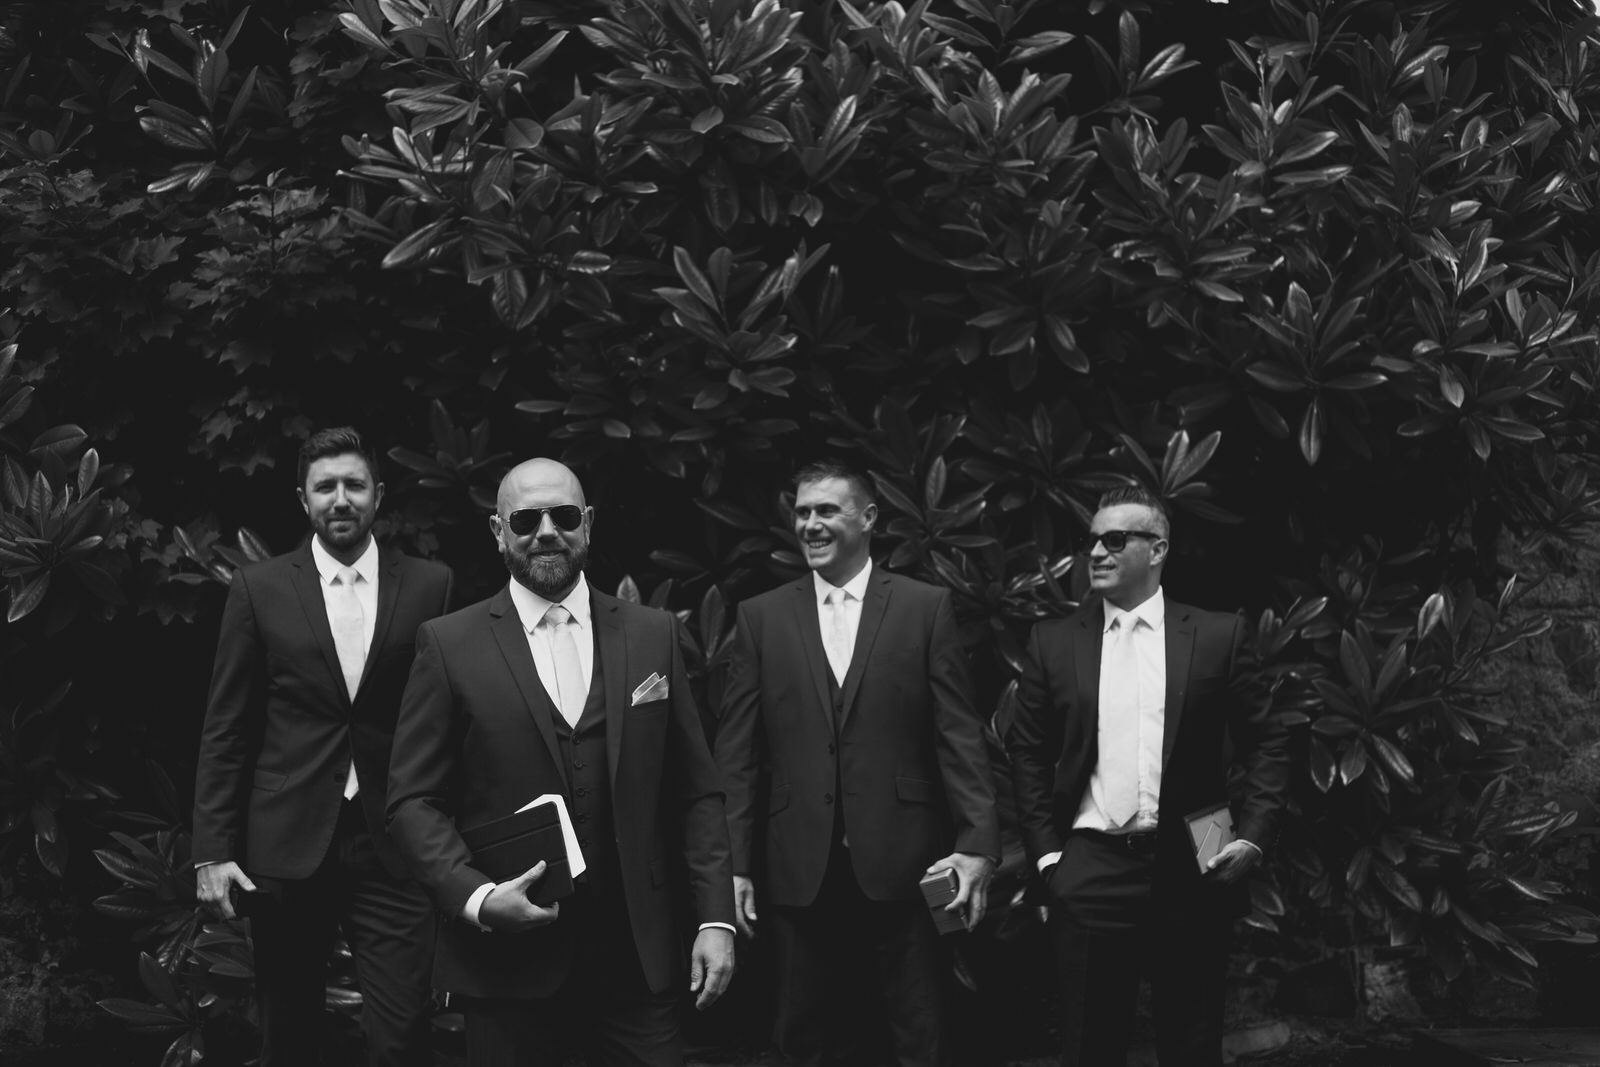 Black and White Groom and groomsmen portrait